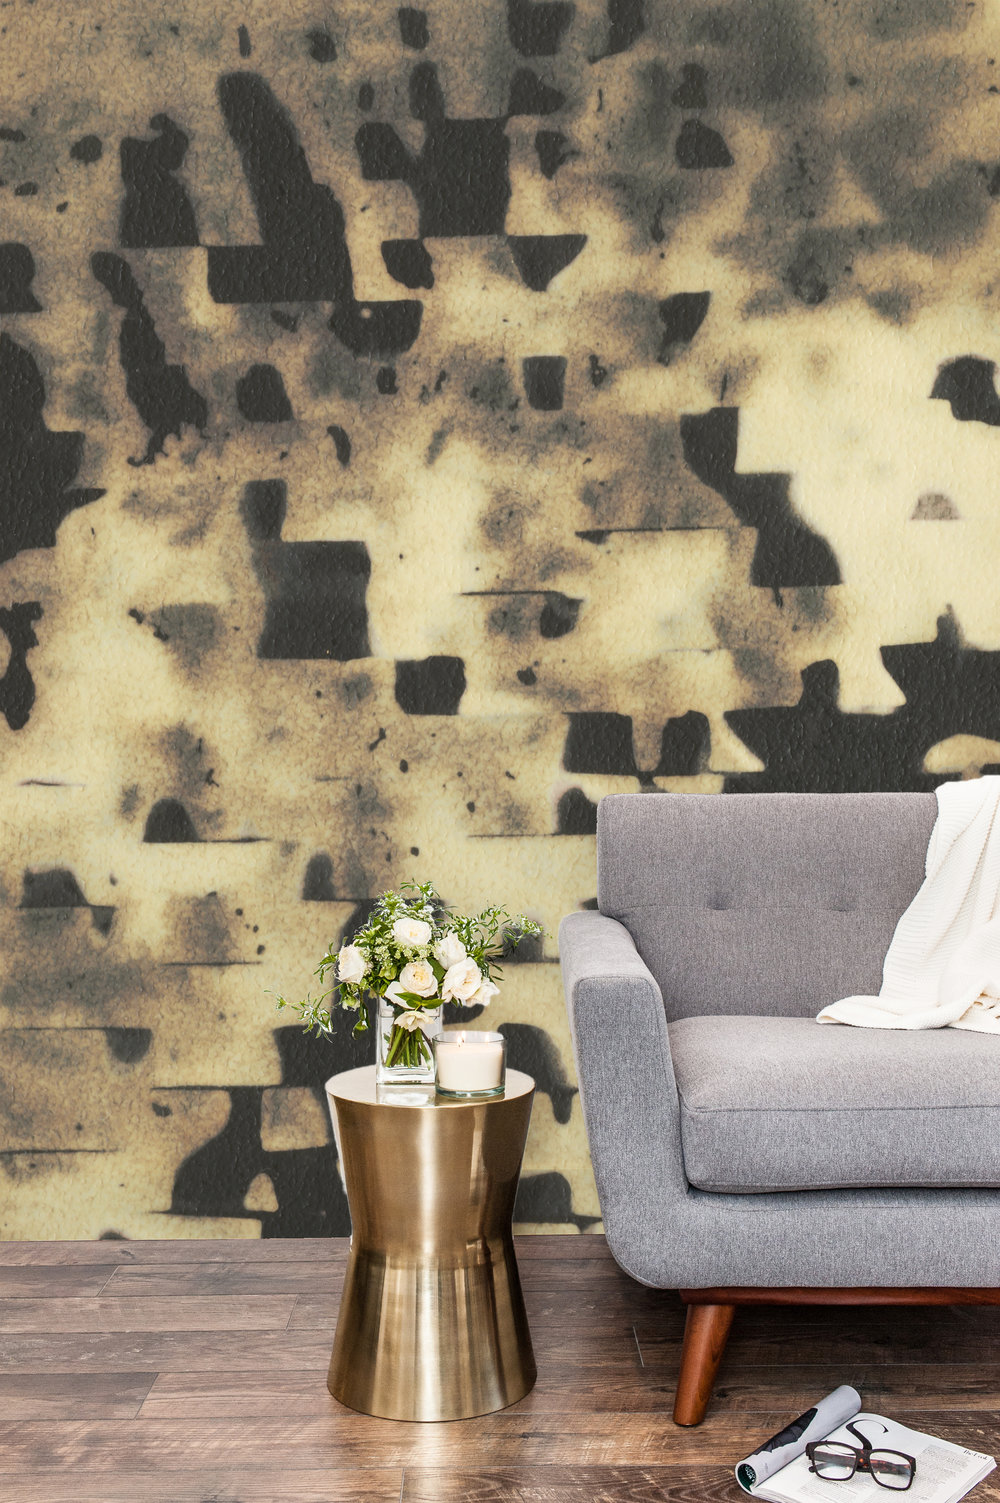 Golden Hour Mural Wallpaper Install